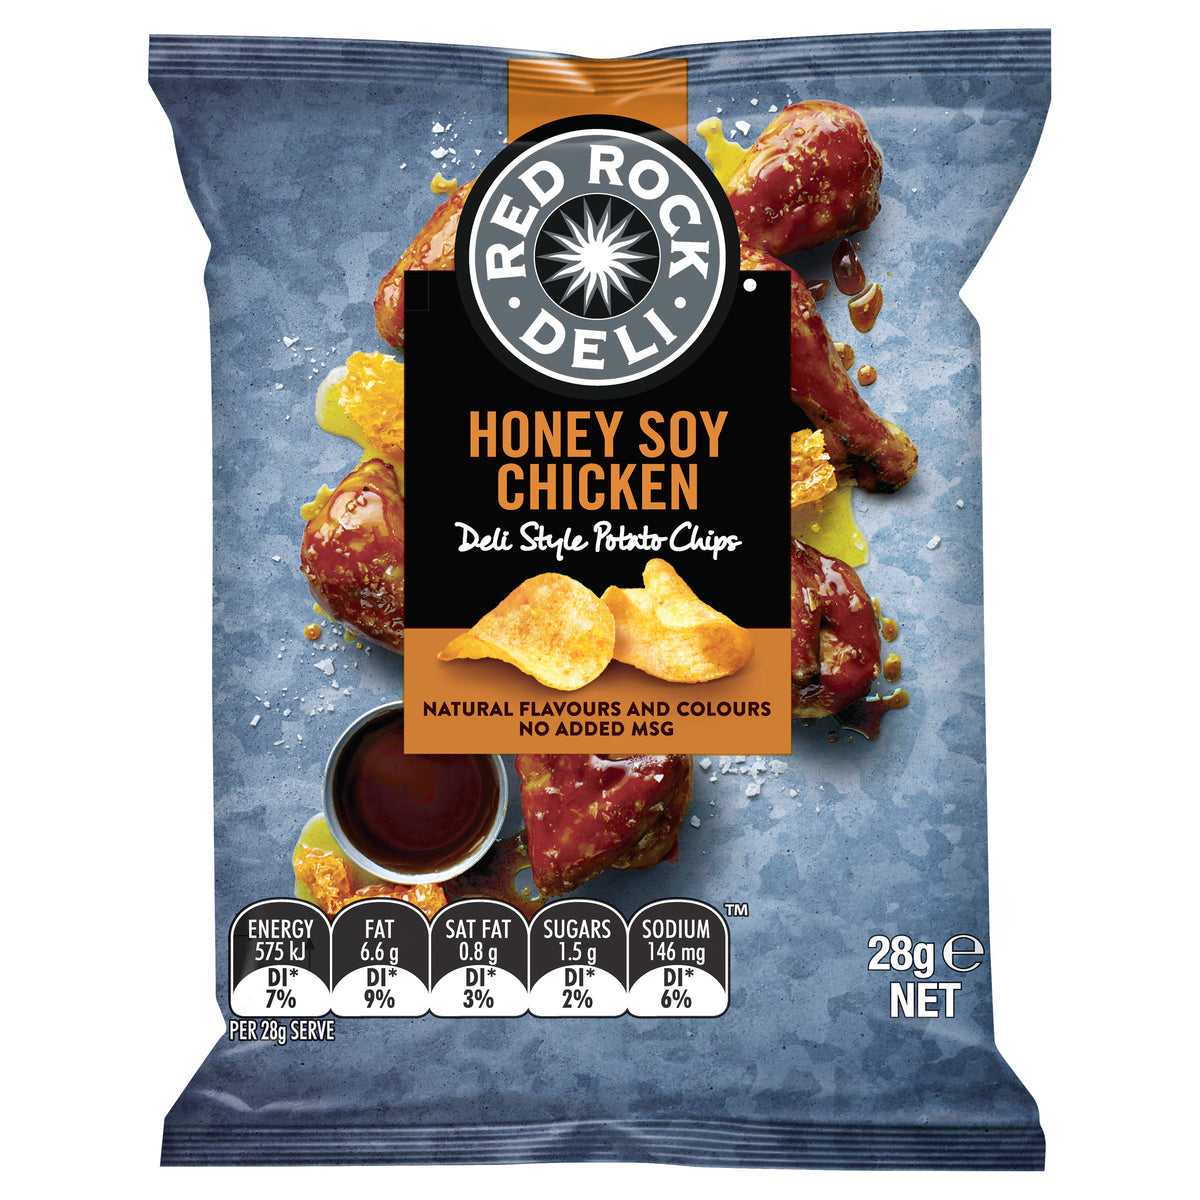 Red Rock Honey Soy Chicken 28g